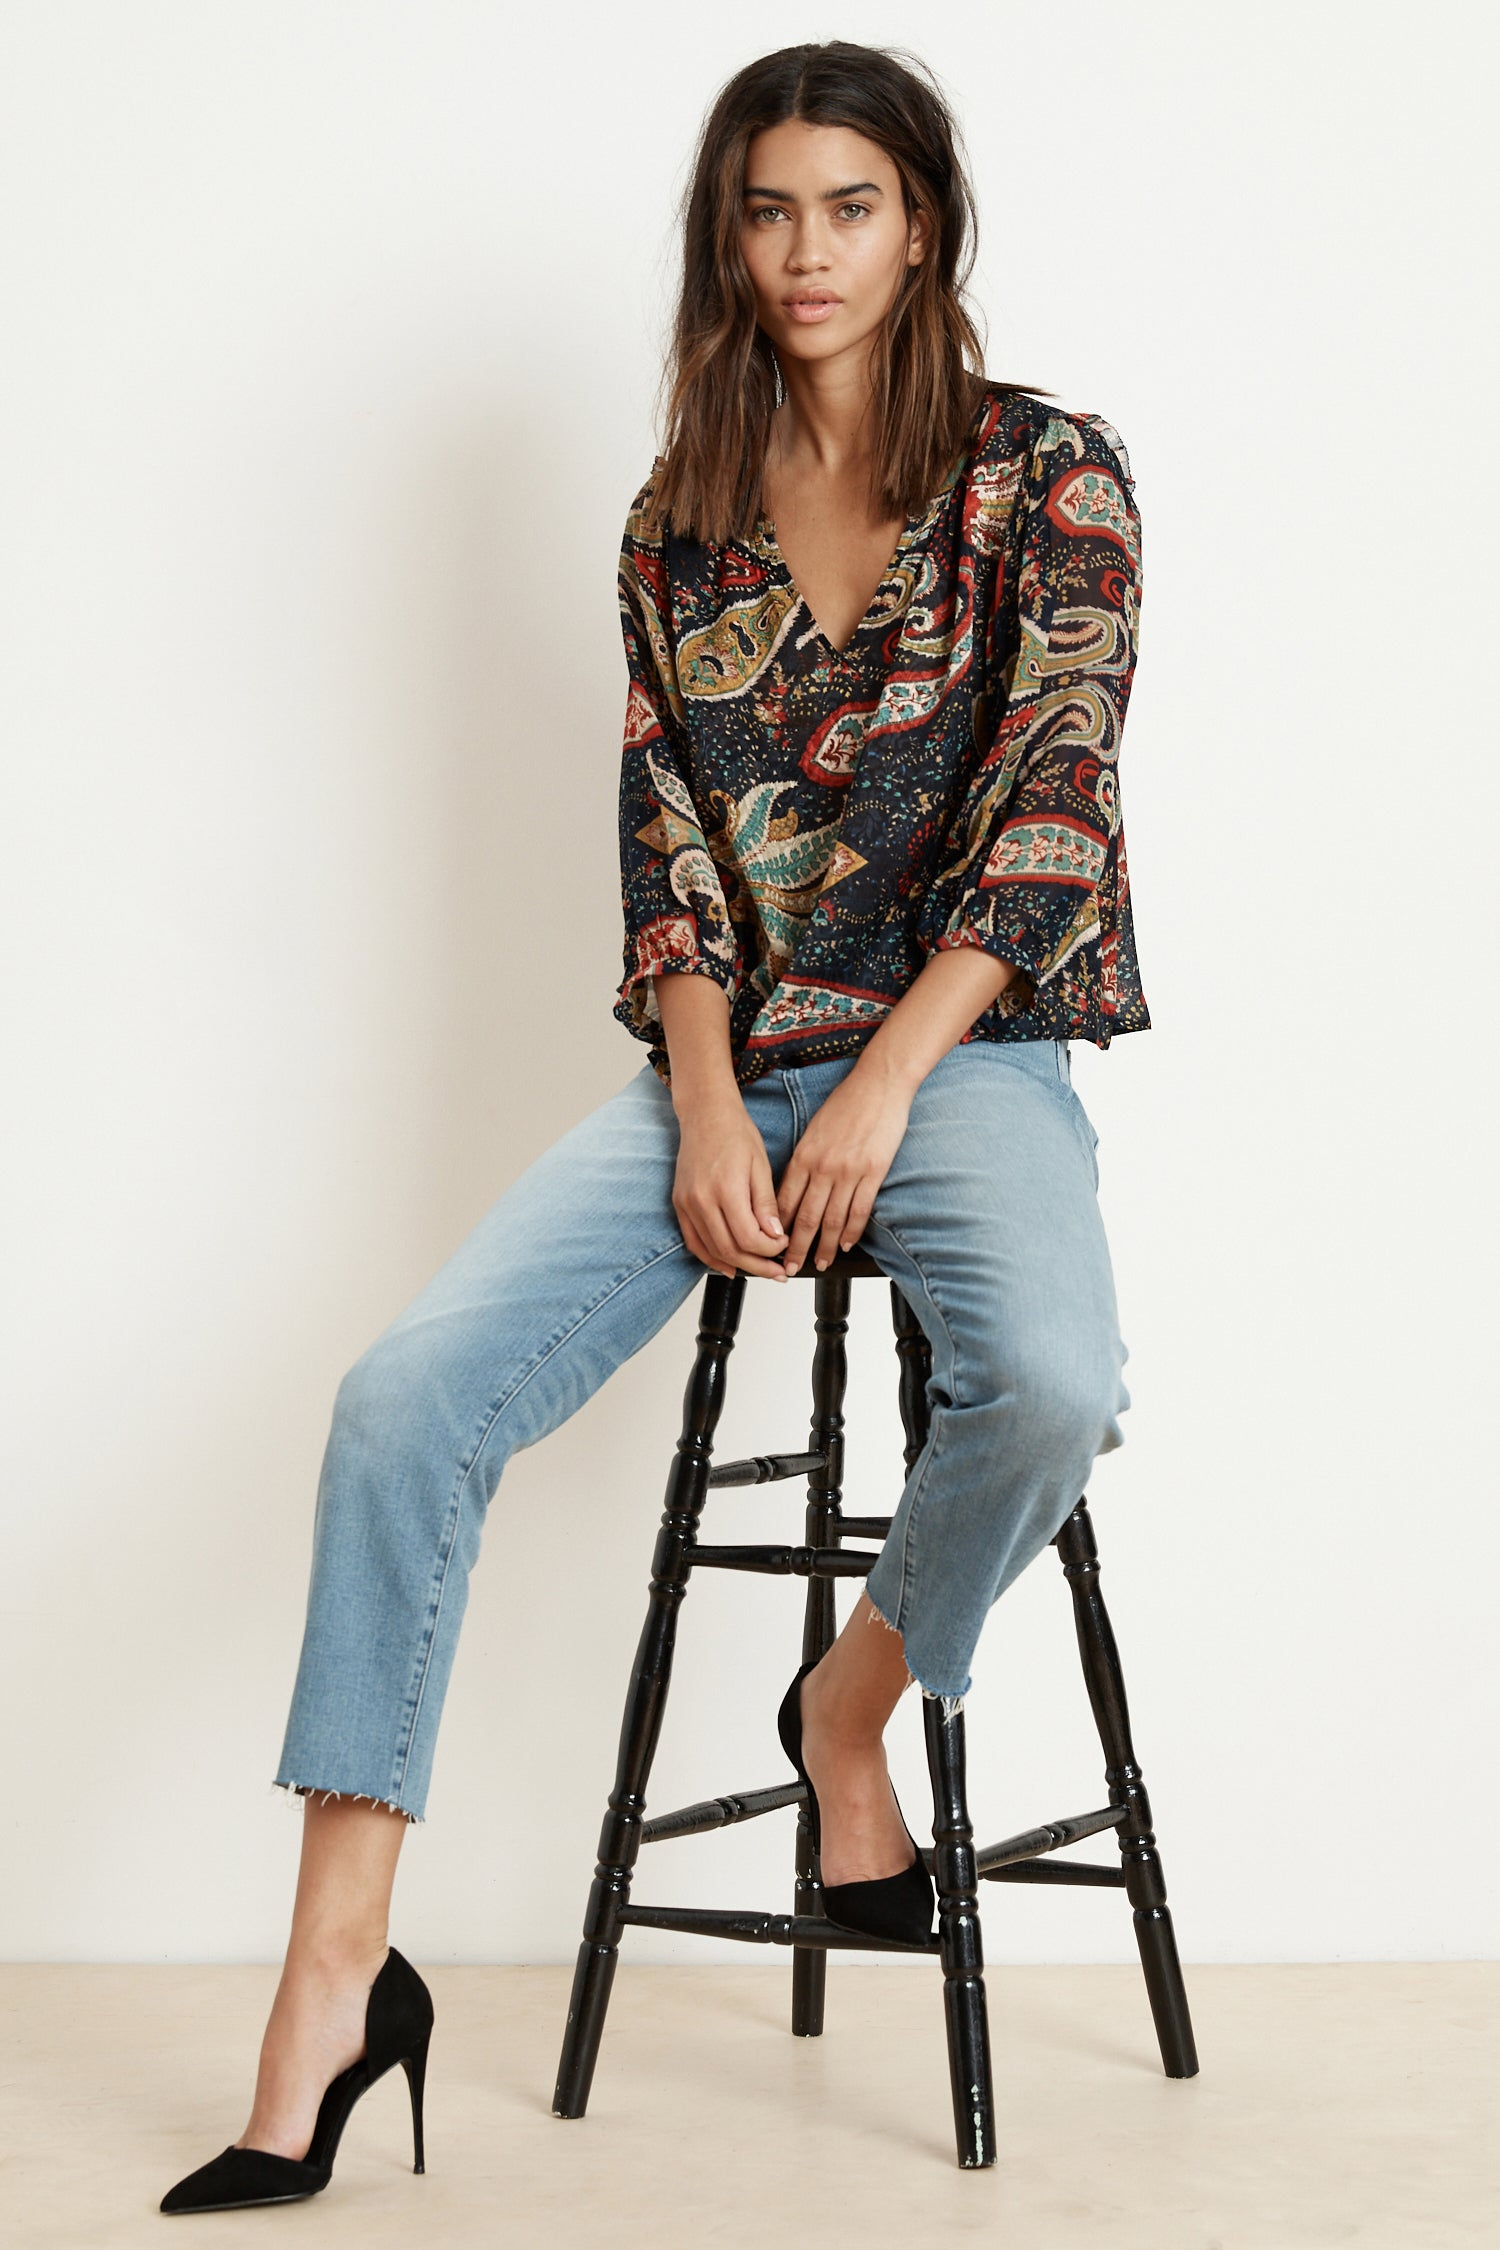 PAOLA PAISLEY V-NECK BLOUSE IN PAISLEY